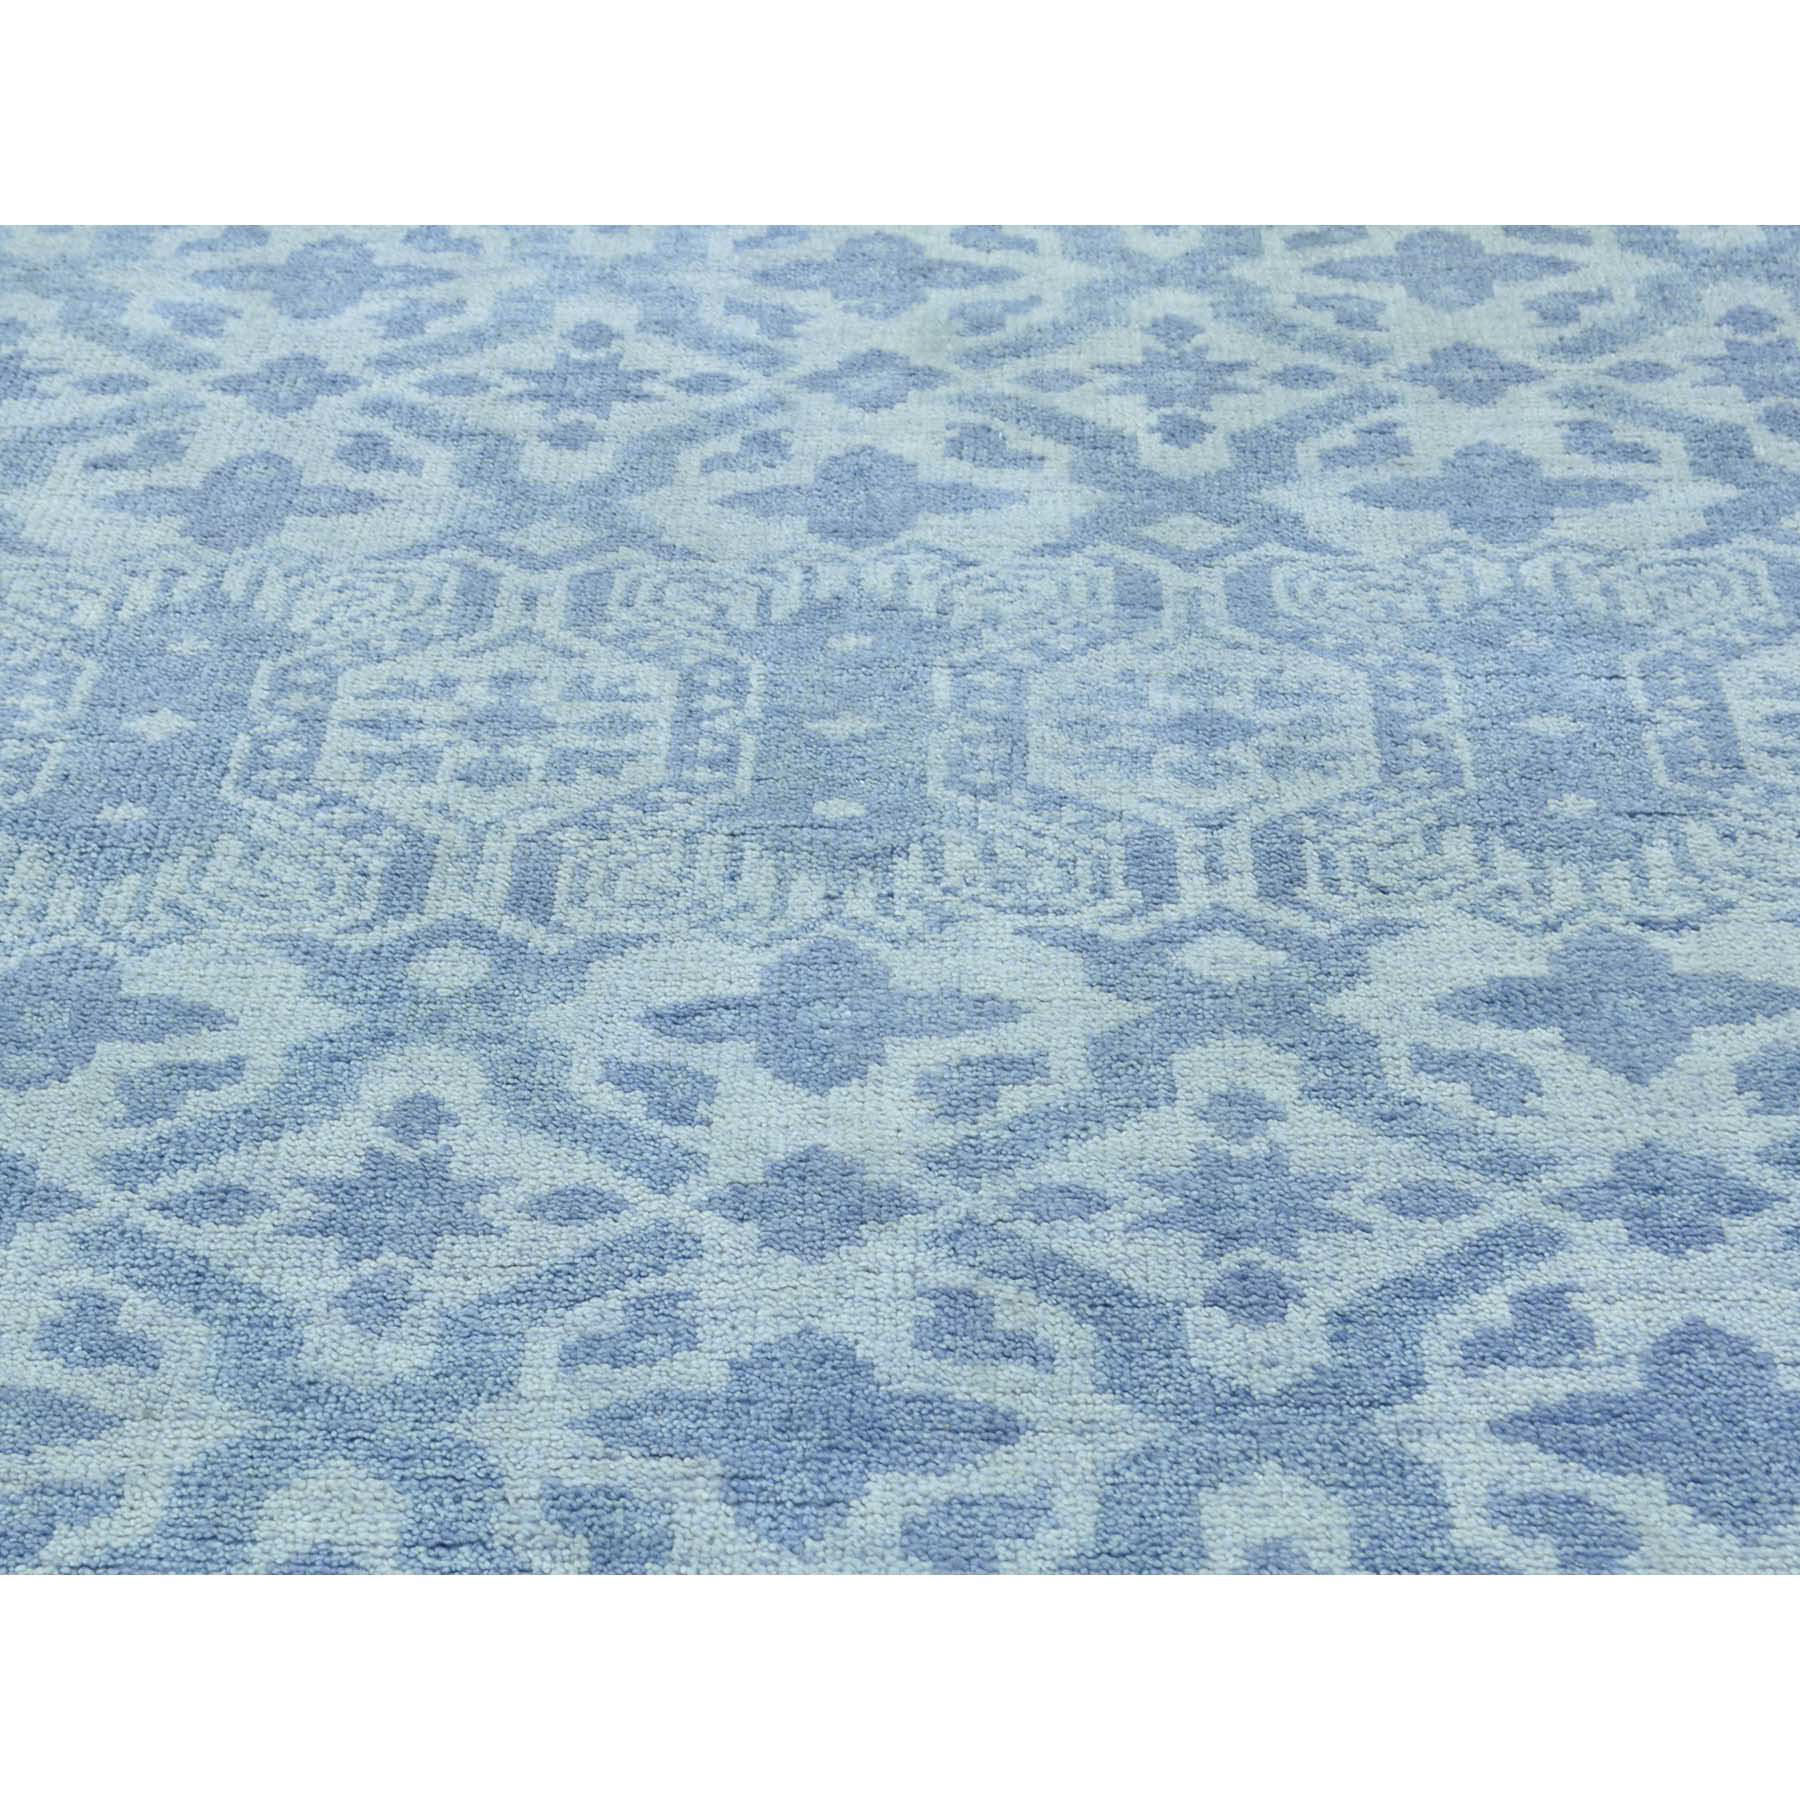 8-1 x10- Pure Wool Hand-Knotted Tone-on-Tone Oriental Rug